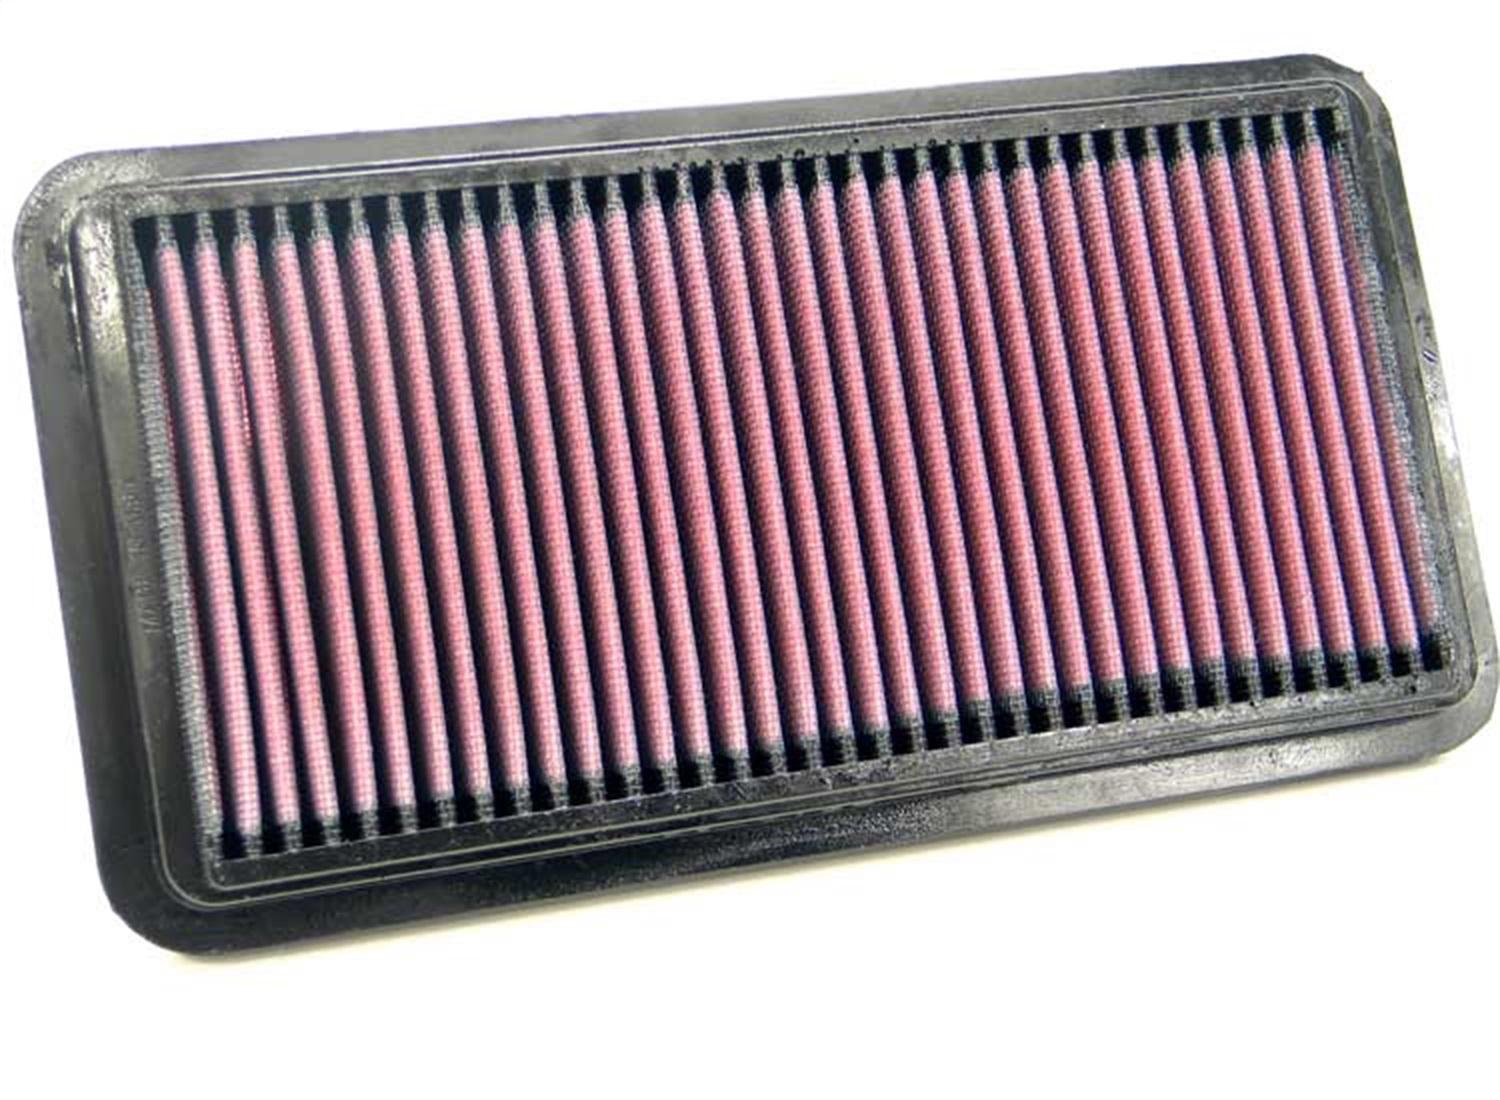 K&N Filters 33-2180 Air Filter Fits 00-06 Insight 33-2180